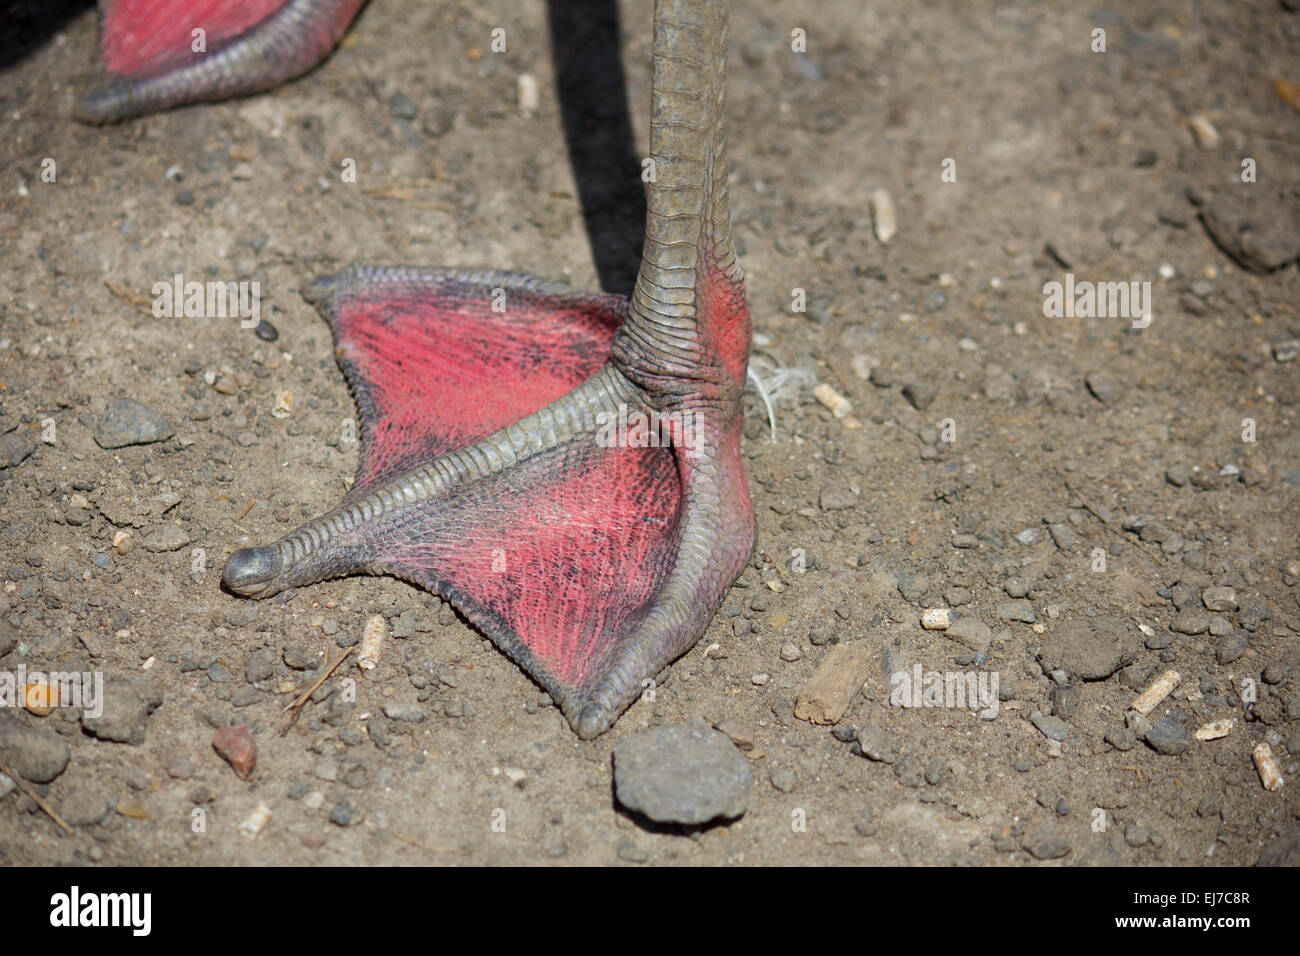 Pink Flamingo foot - Stock Image